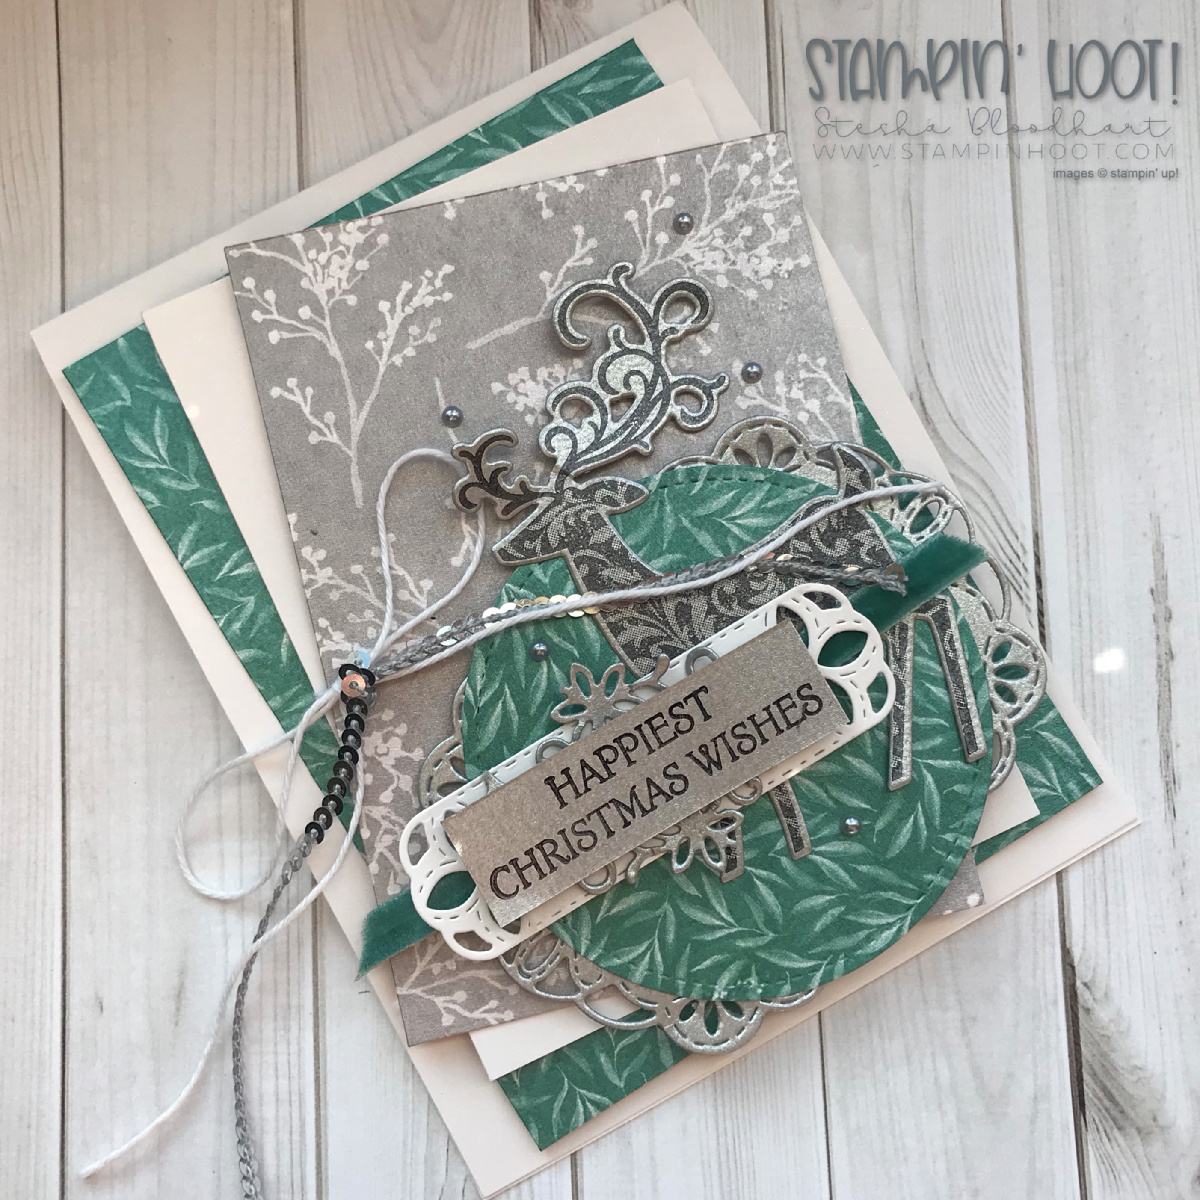 Dashing Deer Bundle by Stampin' Up! for the Stamp Review Crew Blog Hop. Christmas card created by Stesha Bloohart, Stampin' Hoot! #stampinhoot #steshabloohart